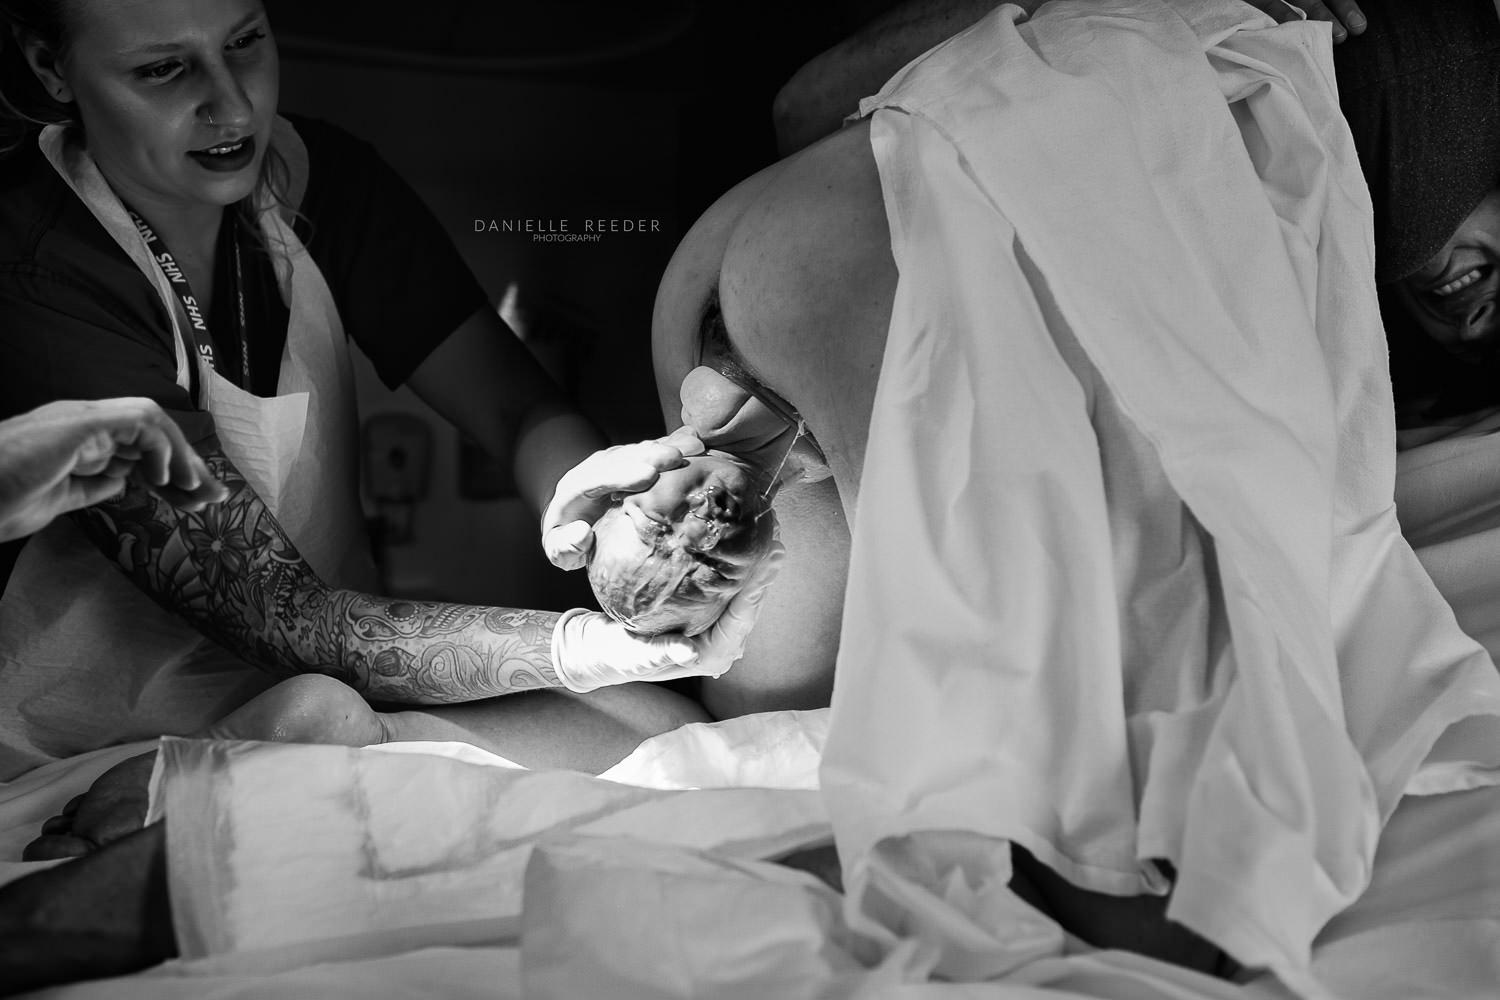 Midwife 'catching' baby as it is born.